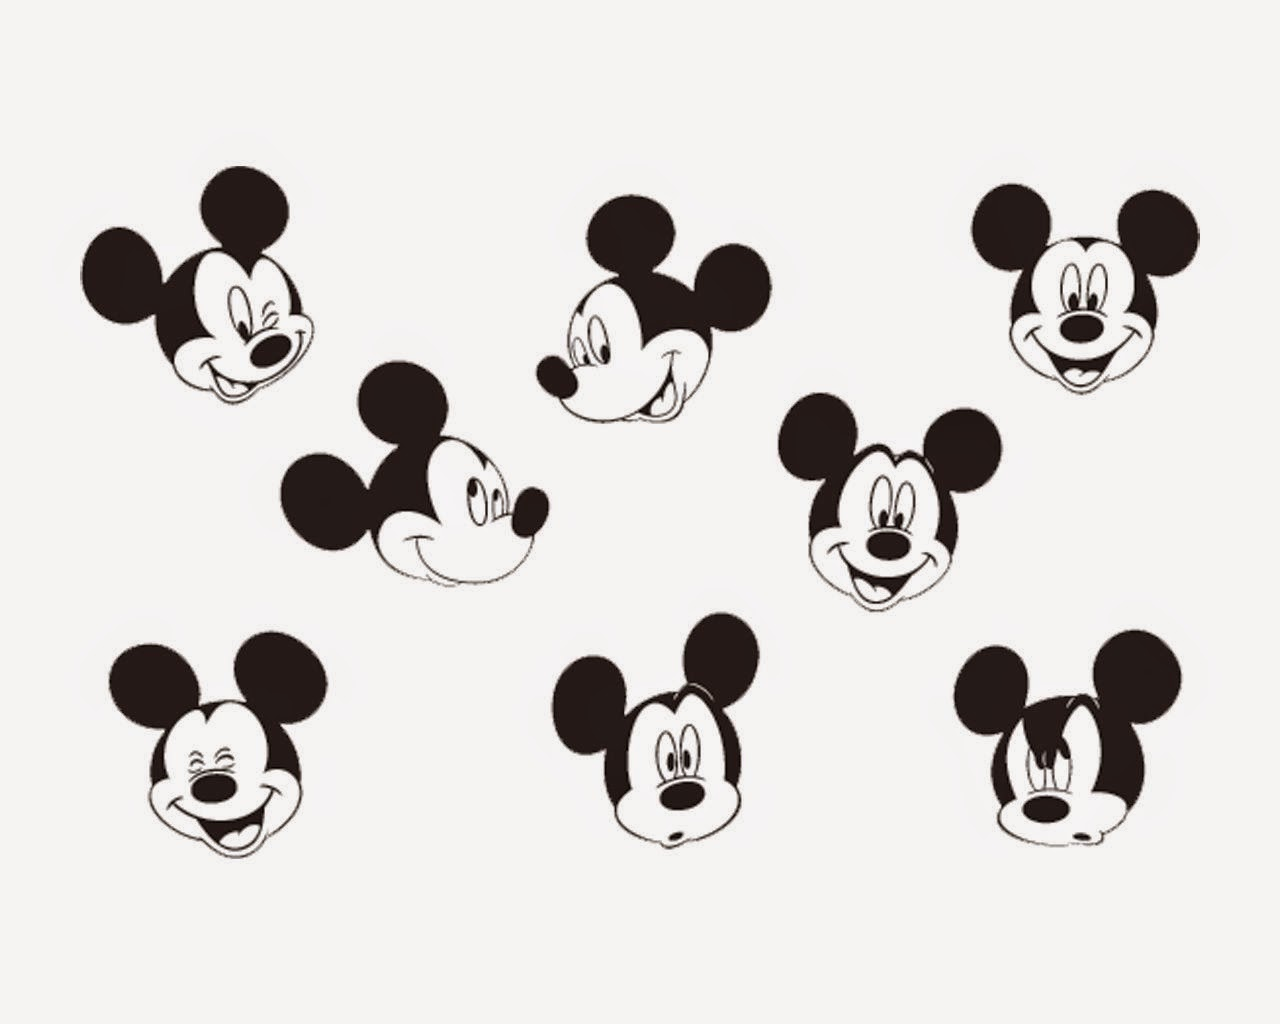 ImagesList com: Mickey Mouse Wallpapers, part 3